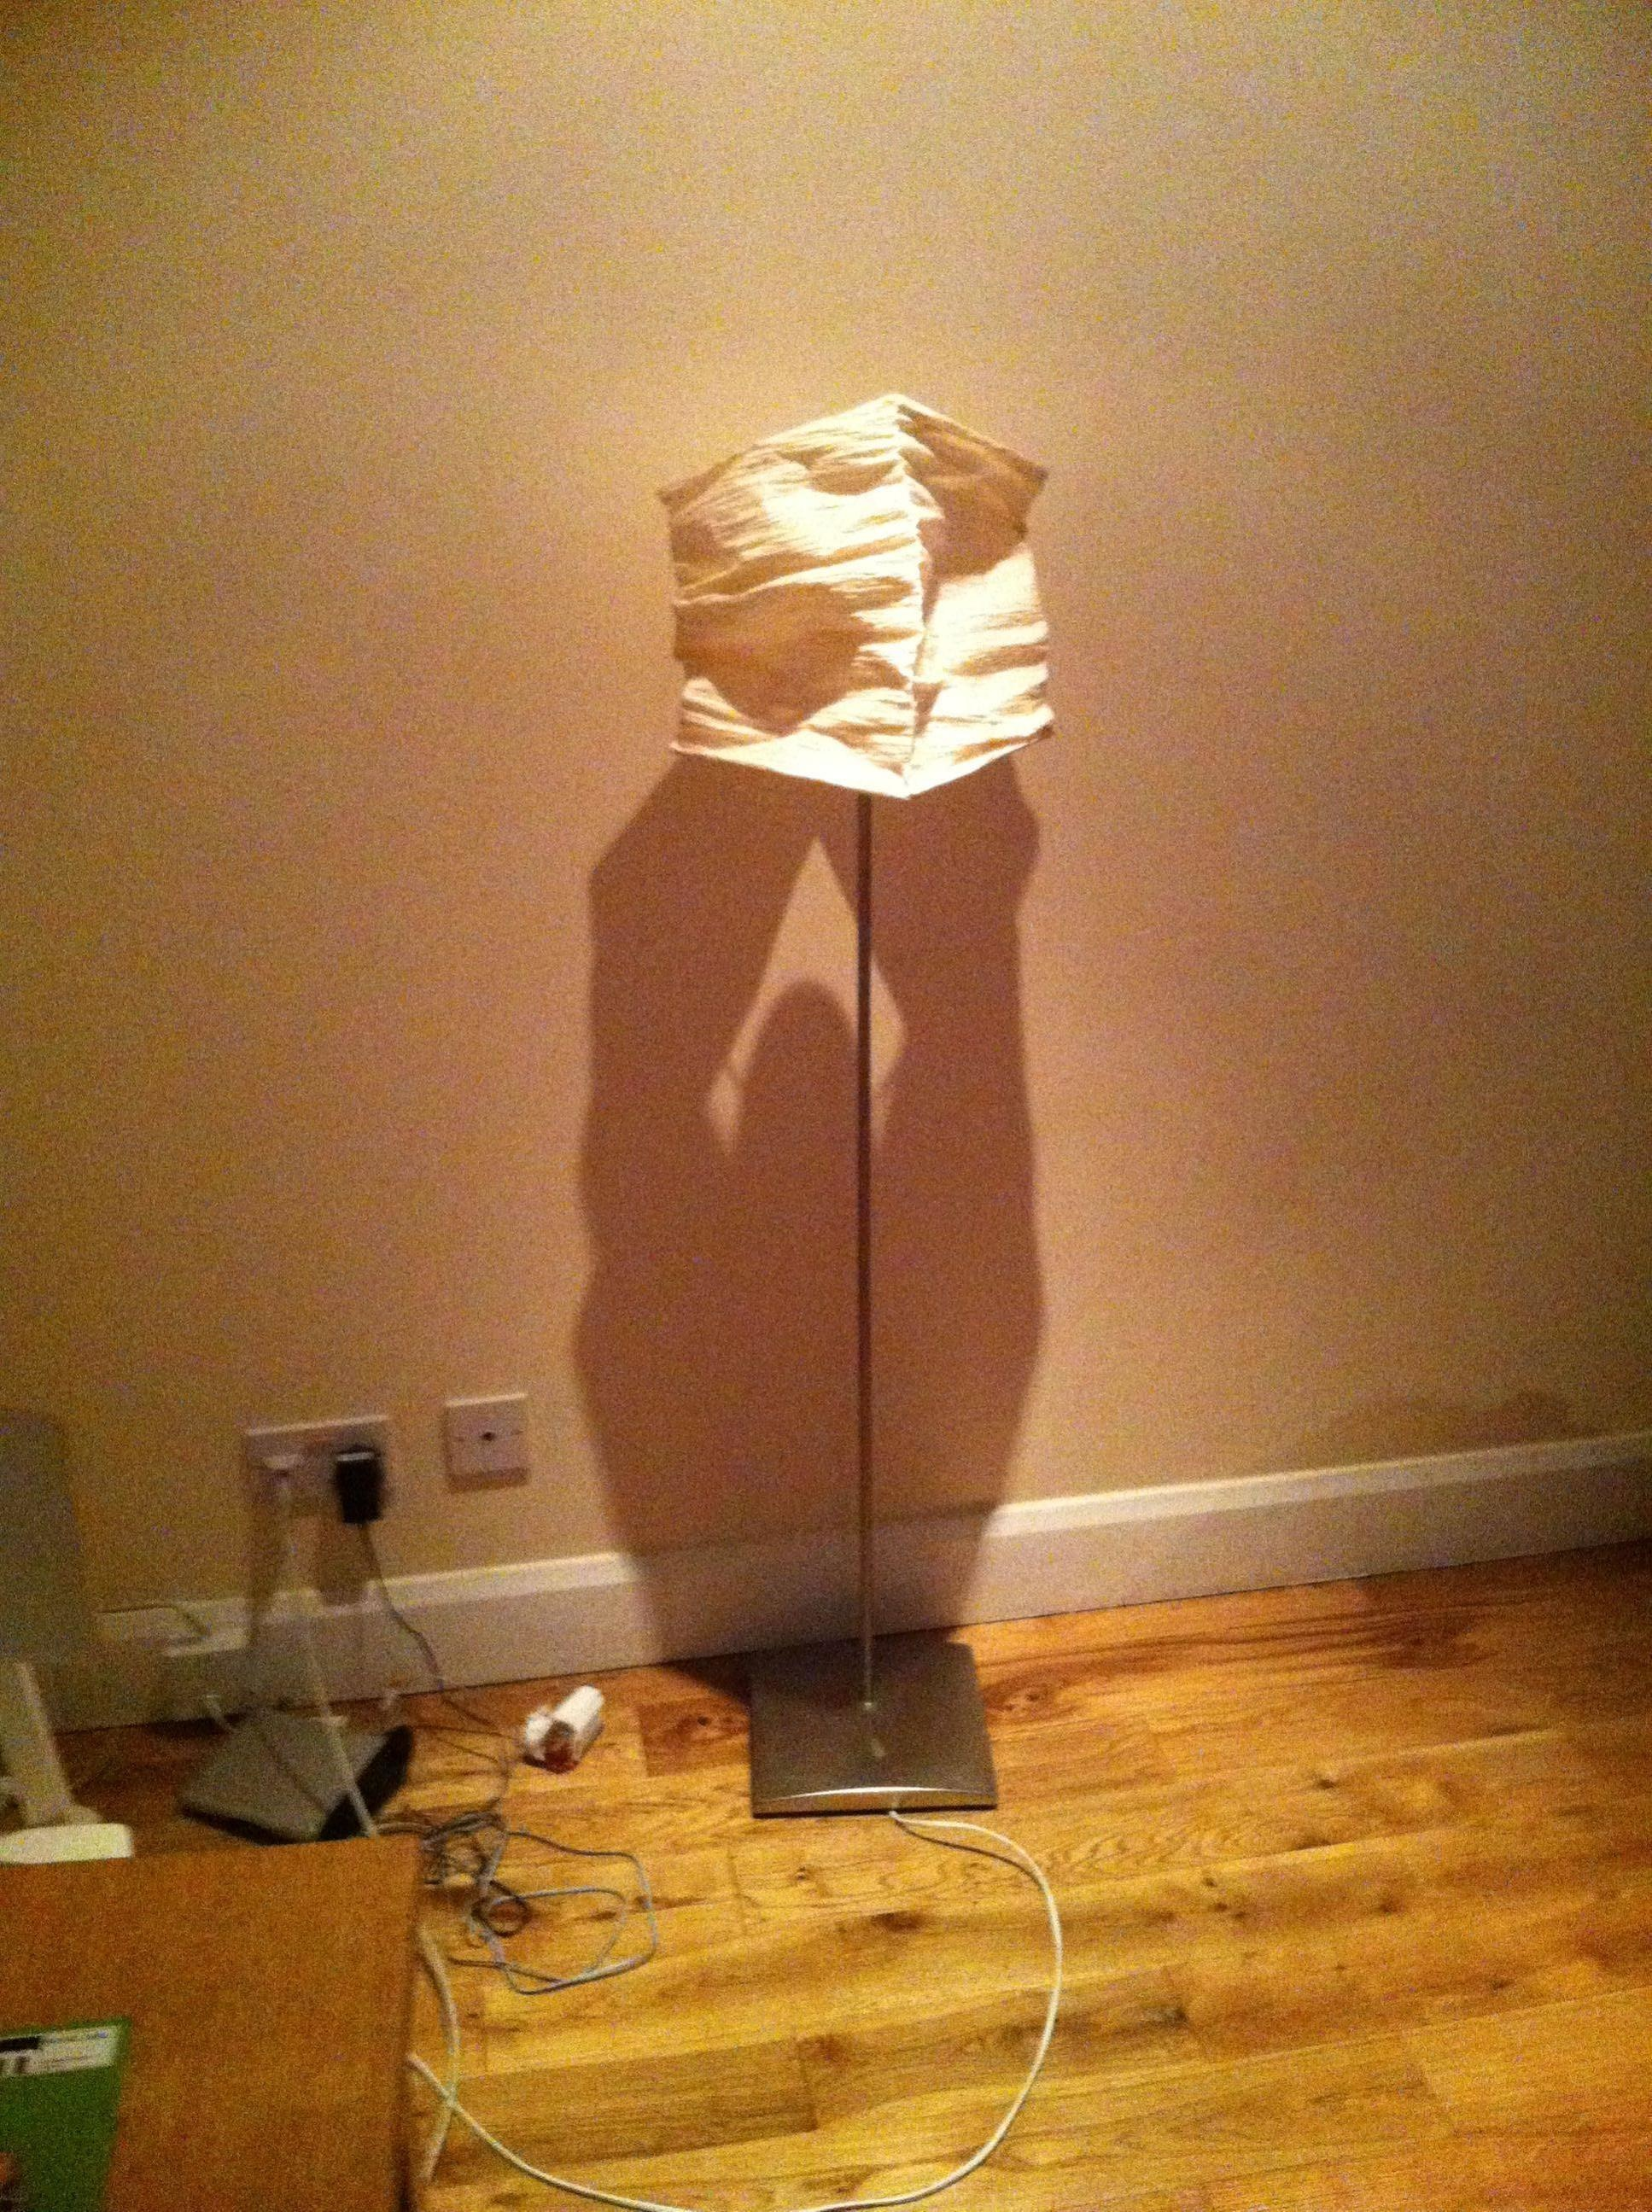 Lamp, or old-timey muscle man?